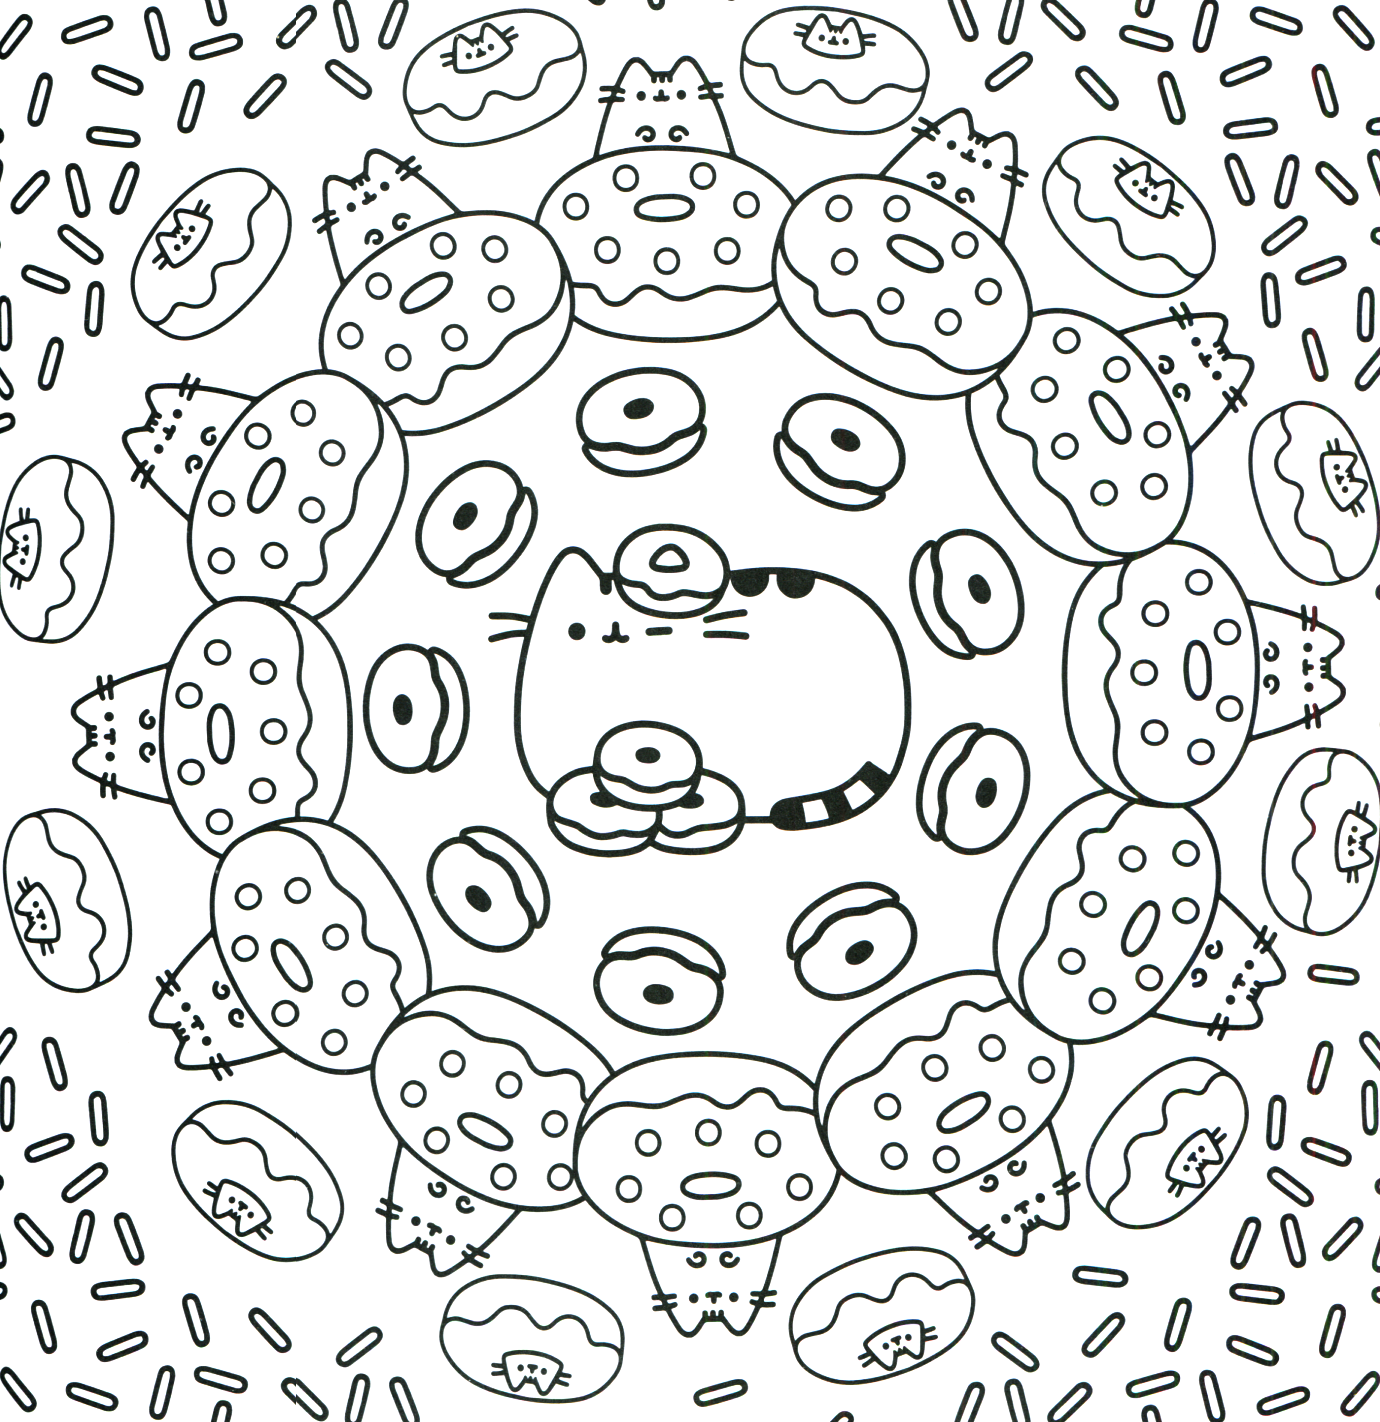 Donut Kawaii Coloring Pages Pusheen Coloring Pages Unicorn Coloring Pages Cat Coloring Page